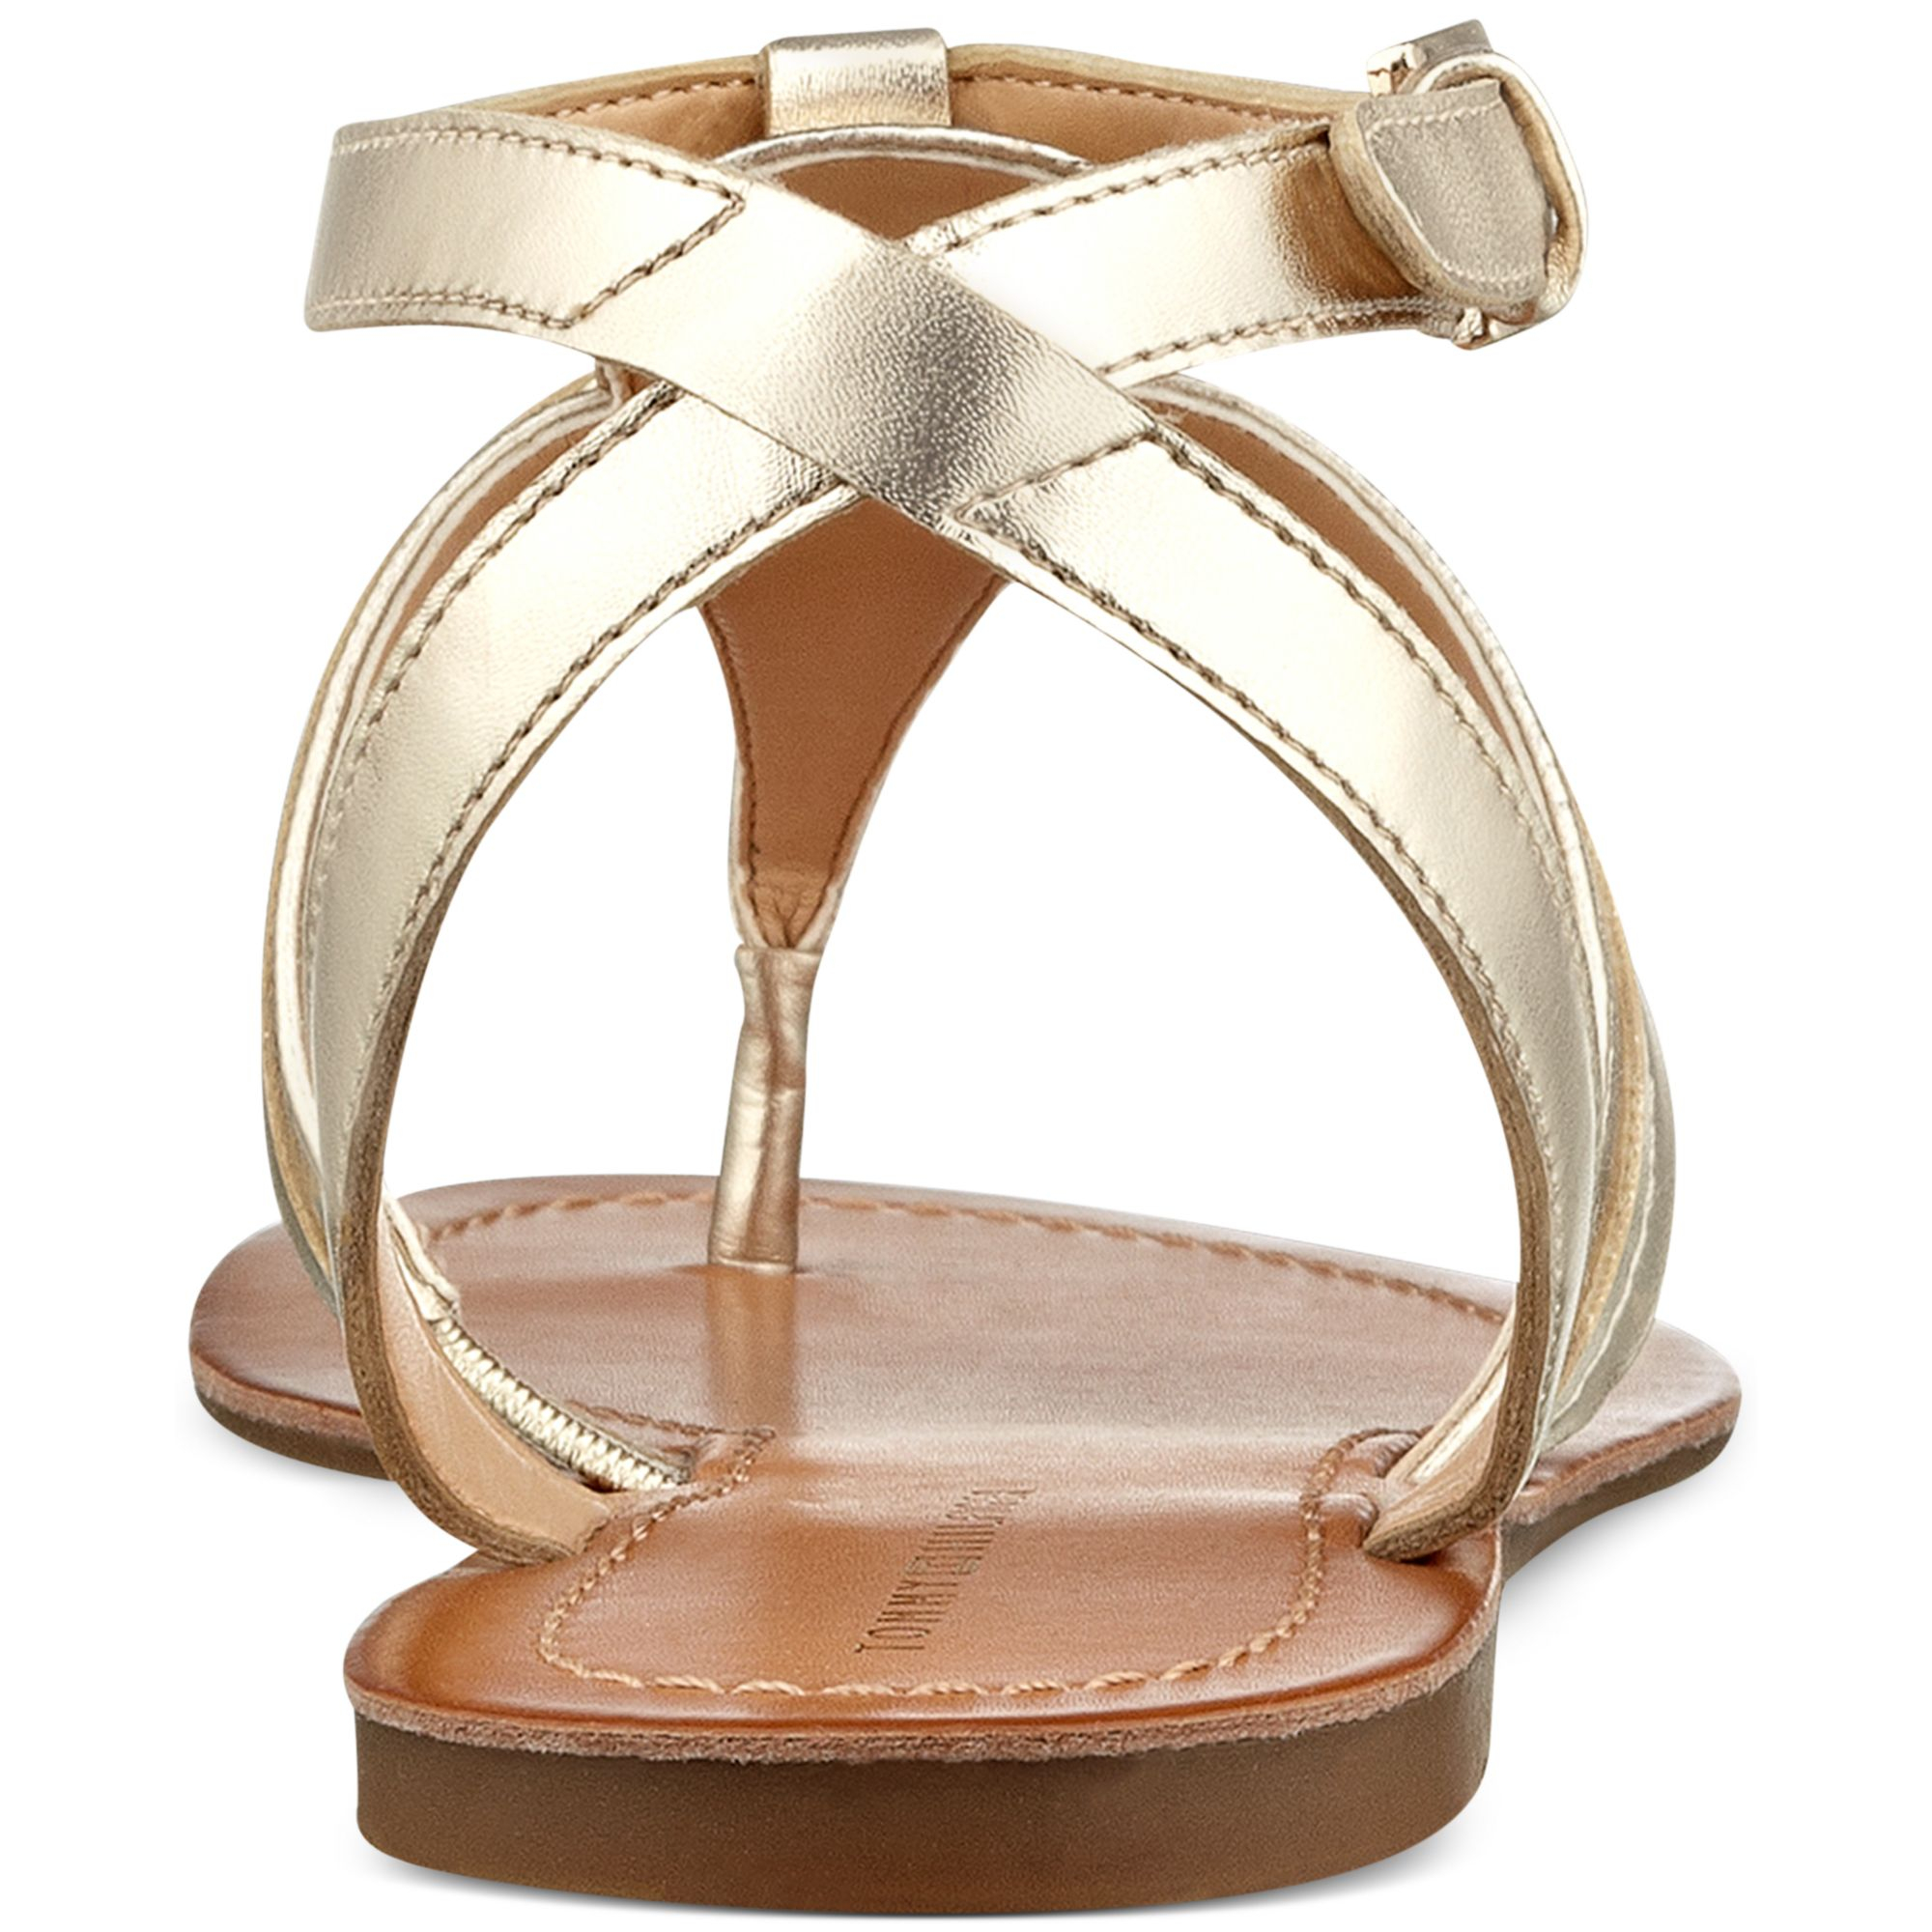 d1f5a7df9 Lyst - Tommy Hilfiger Womens Lorine Flat Thong Sandals in Metallic